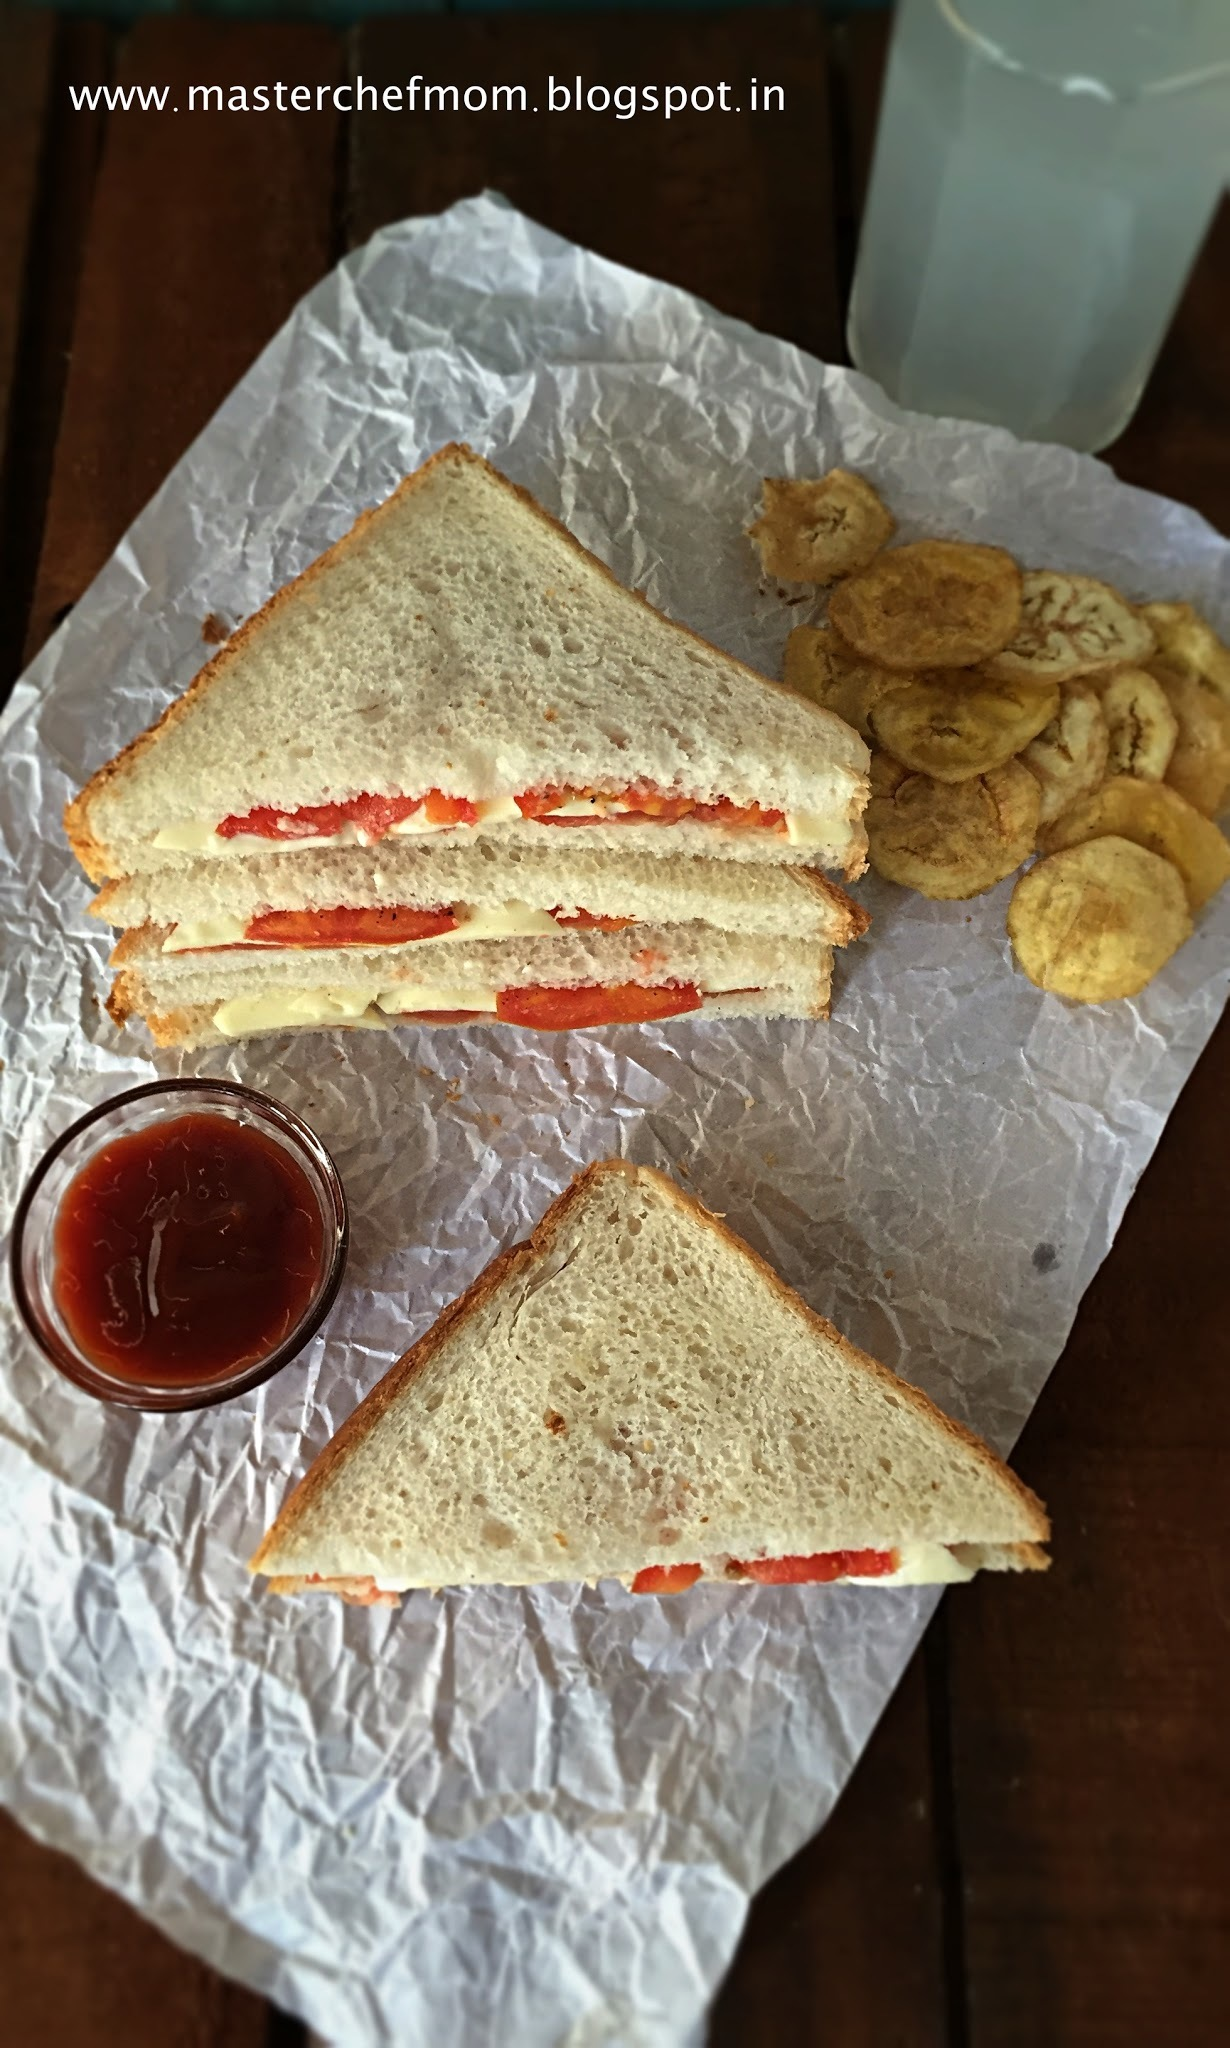 Tomato Cheese Sandwich | Classic Tomato Cheese Sandwich |How to make Tomato Cheese Sandwich at Home | Picnic/Travel/Tiffin Box Special Sandwich | Stepwise Pictures | Quick and Easy Recipe